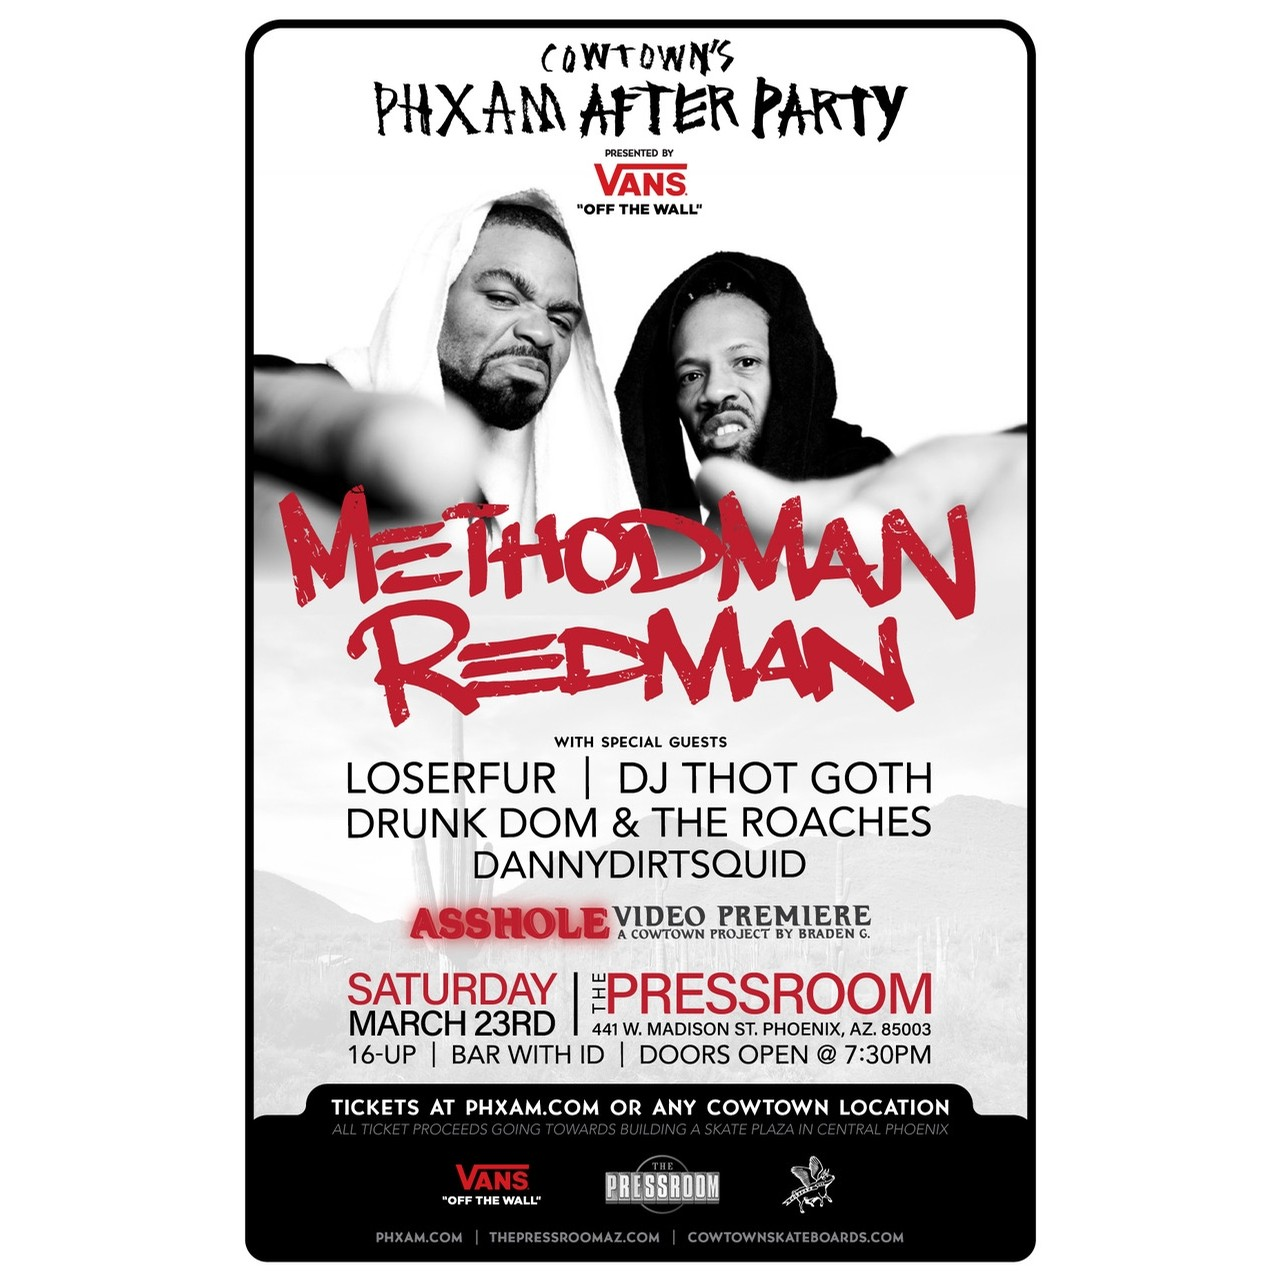 Cowtowns PHXAM 2019 After Party Feat. Method Man/Redman Presented by Vans